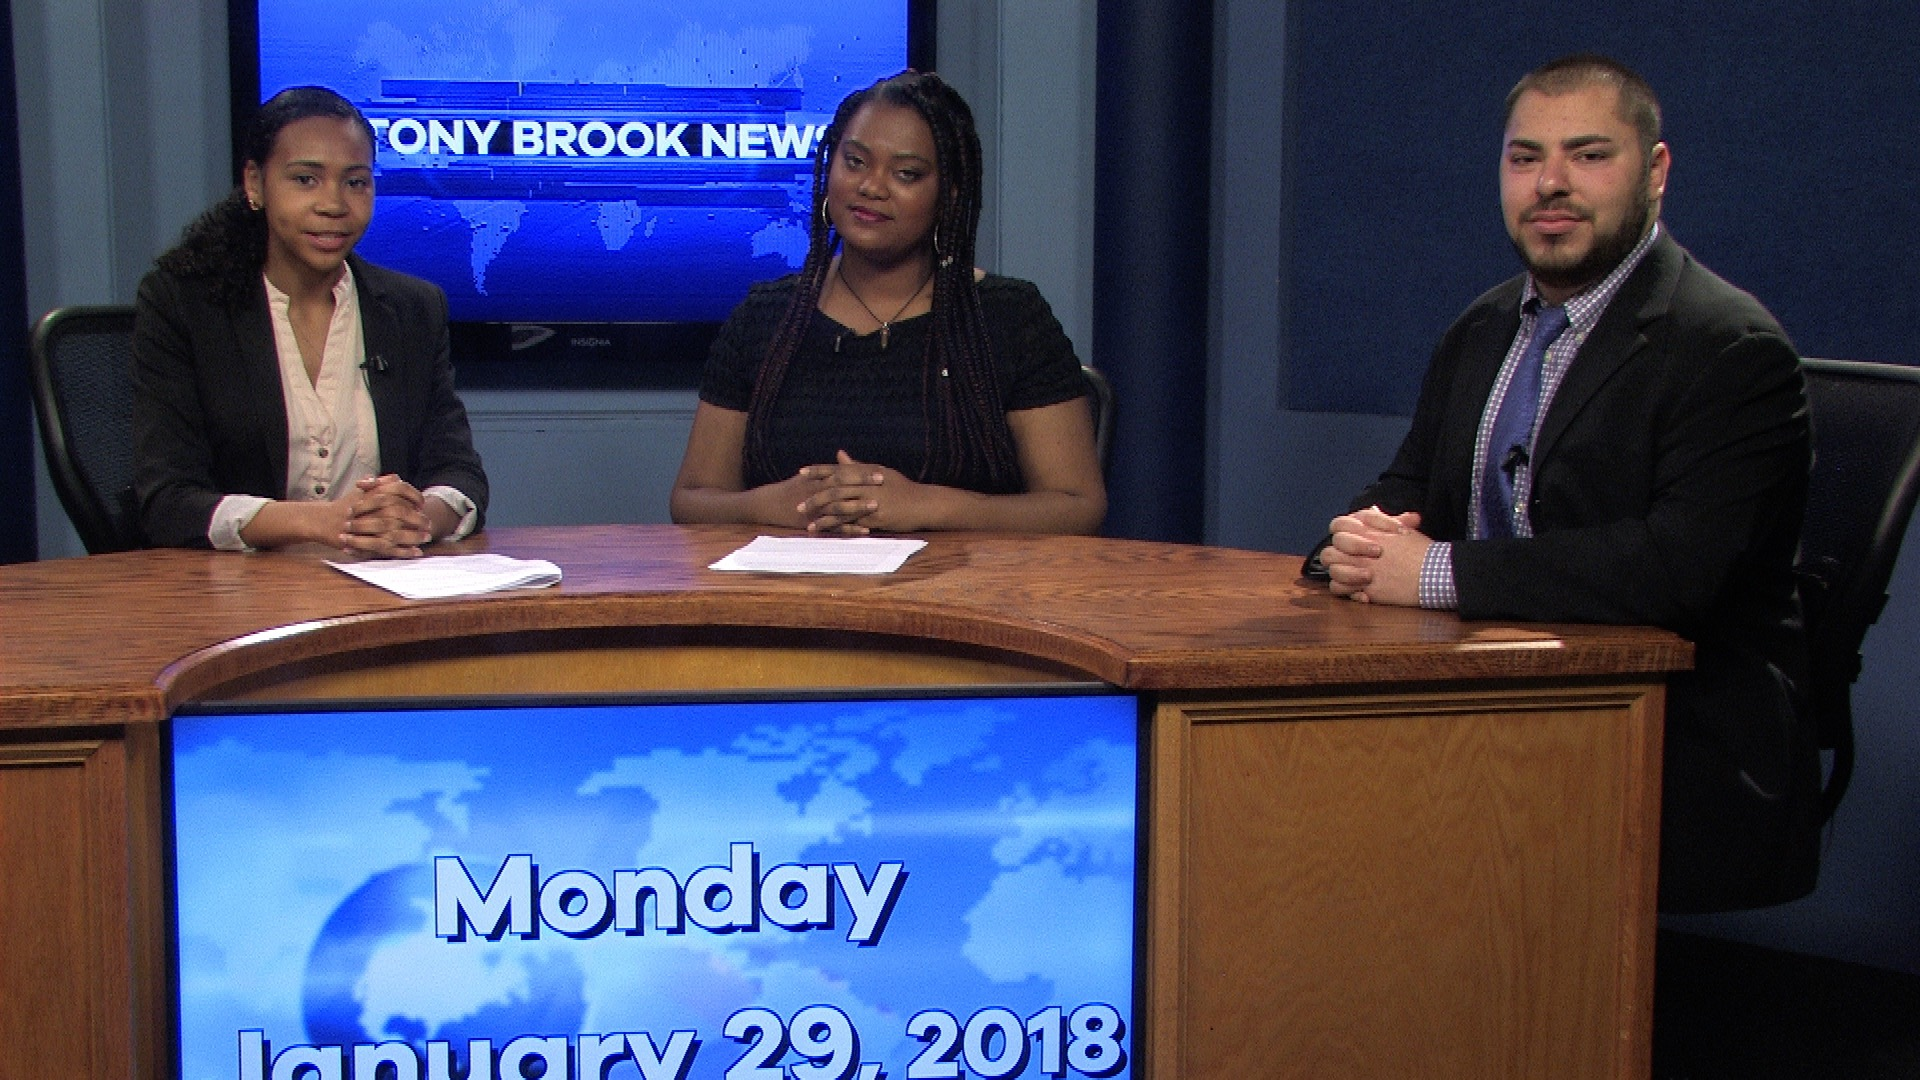 Stony Brook News – January 29, 2018